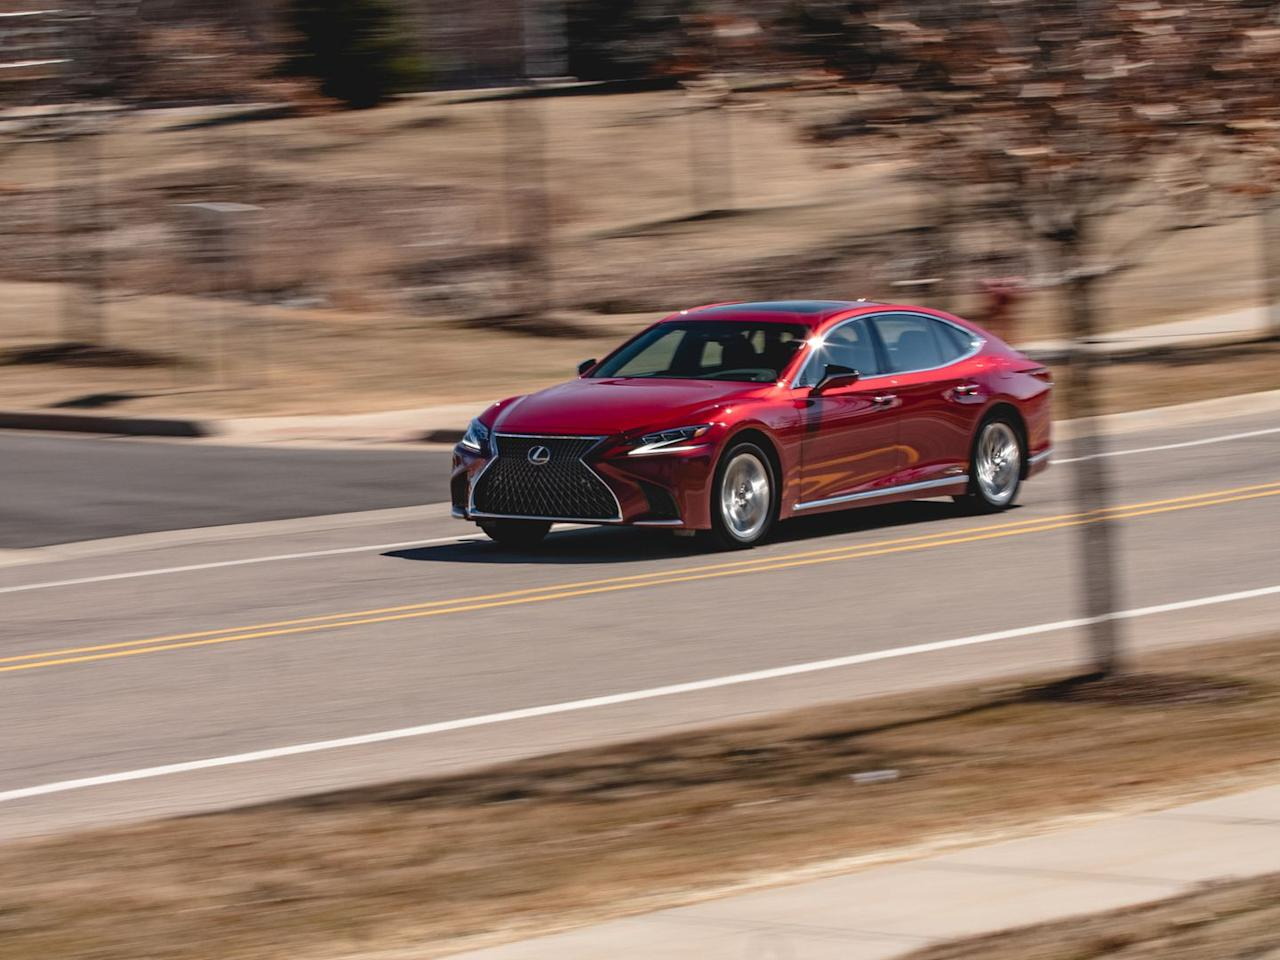 "<p>Three power units-a 3.5-liter V-6 capable of Atkinson-cycle operation and two electric motor/generators-power the big sedan. Combined output is 354 horsepower. But as with <a href=""https://www.caranddriver.com/lexus/lc"">Lexus's LC500h hybrid coupe</a>, the heart of the LS500h is <a href=""https://www.caranddriver.com/news/a15349023/two-trans-enter-one-trans-leaves-details-of-the-new-lexus-multi-stage-hybrid/"">a unique and complex transmission</a> that combines continuously variable operation with four fixed ratios from a planetary gearbox.</p>"